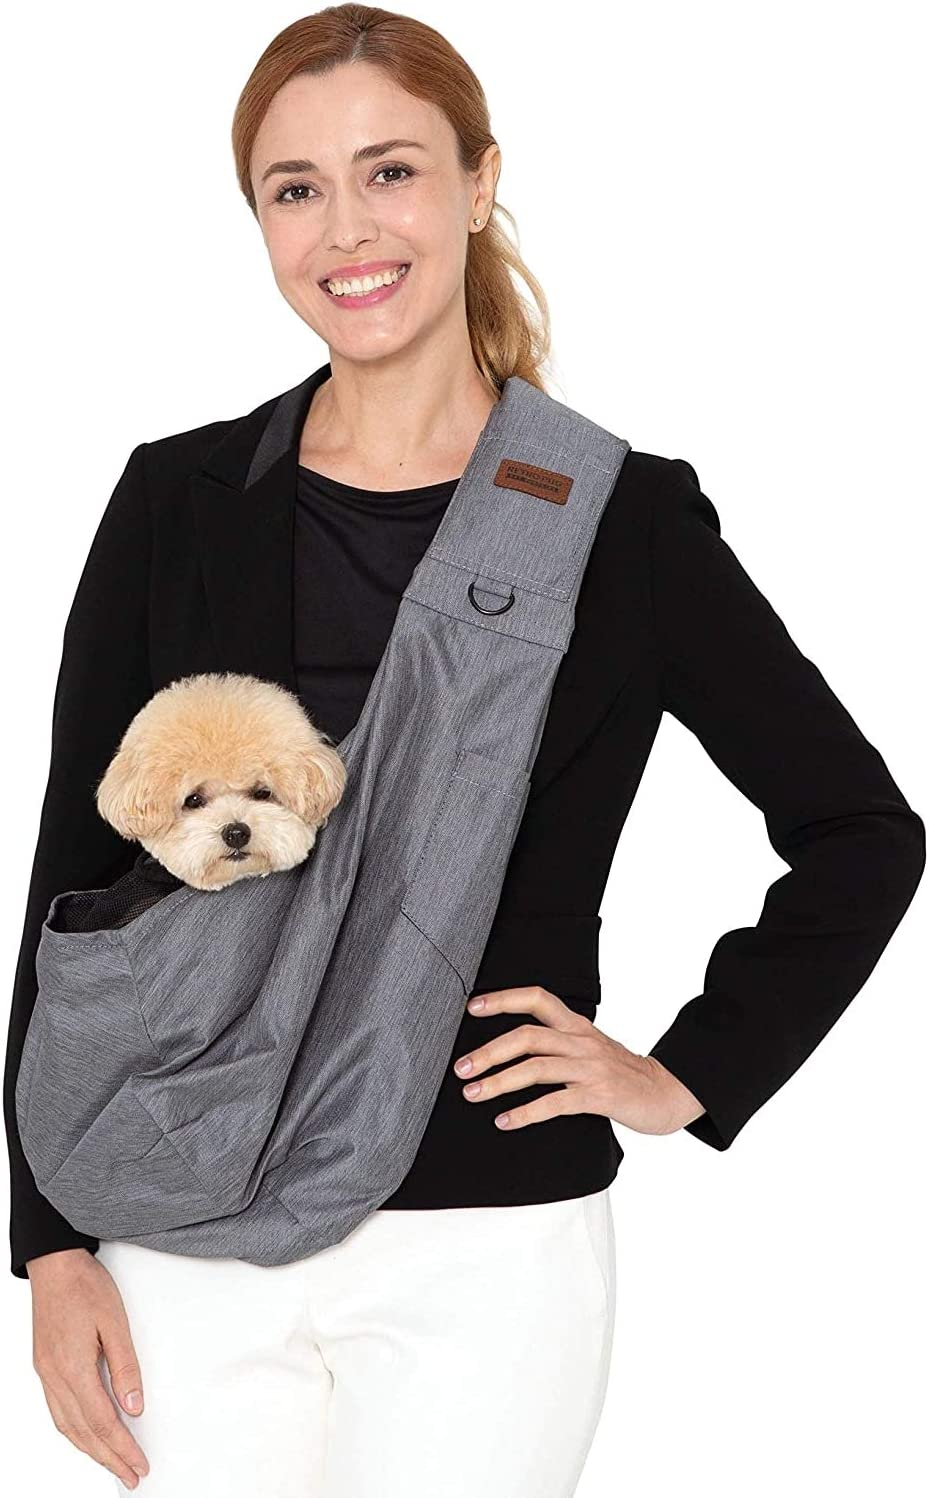 21. Retro Pug Dog Sling Carrier for Small and Medium Dogs